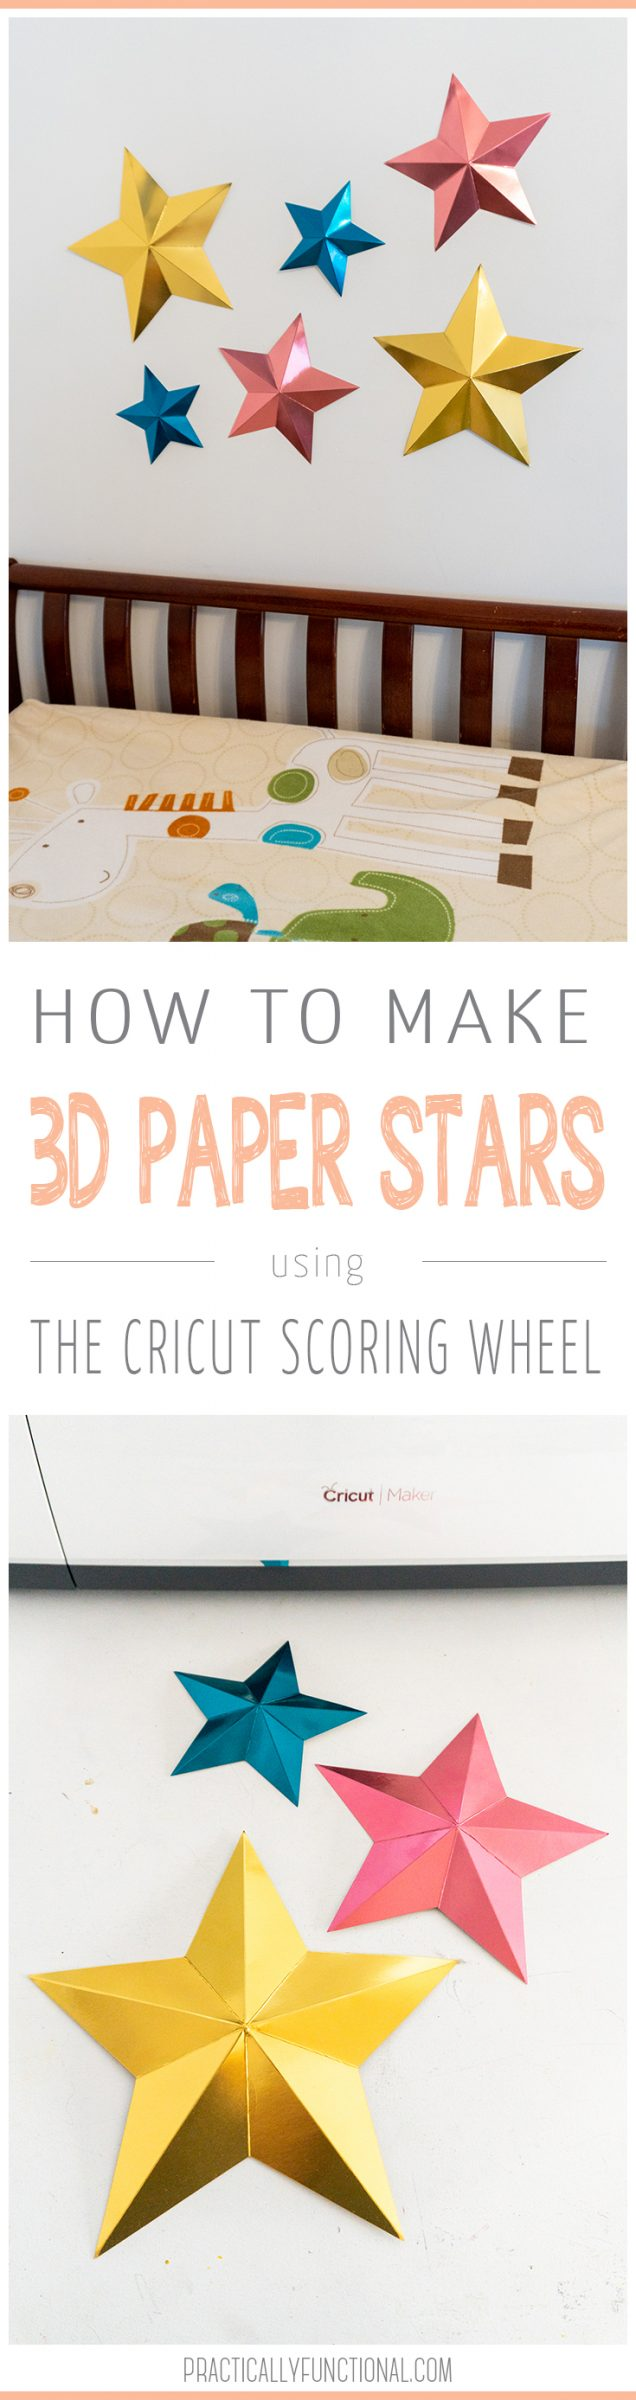 How to make 3d paper stars with the cricut scoring wheel 2 photo